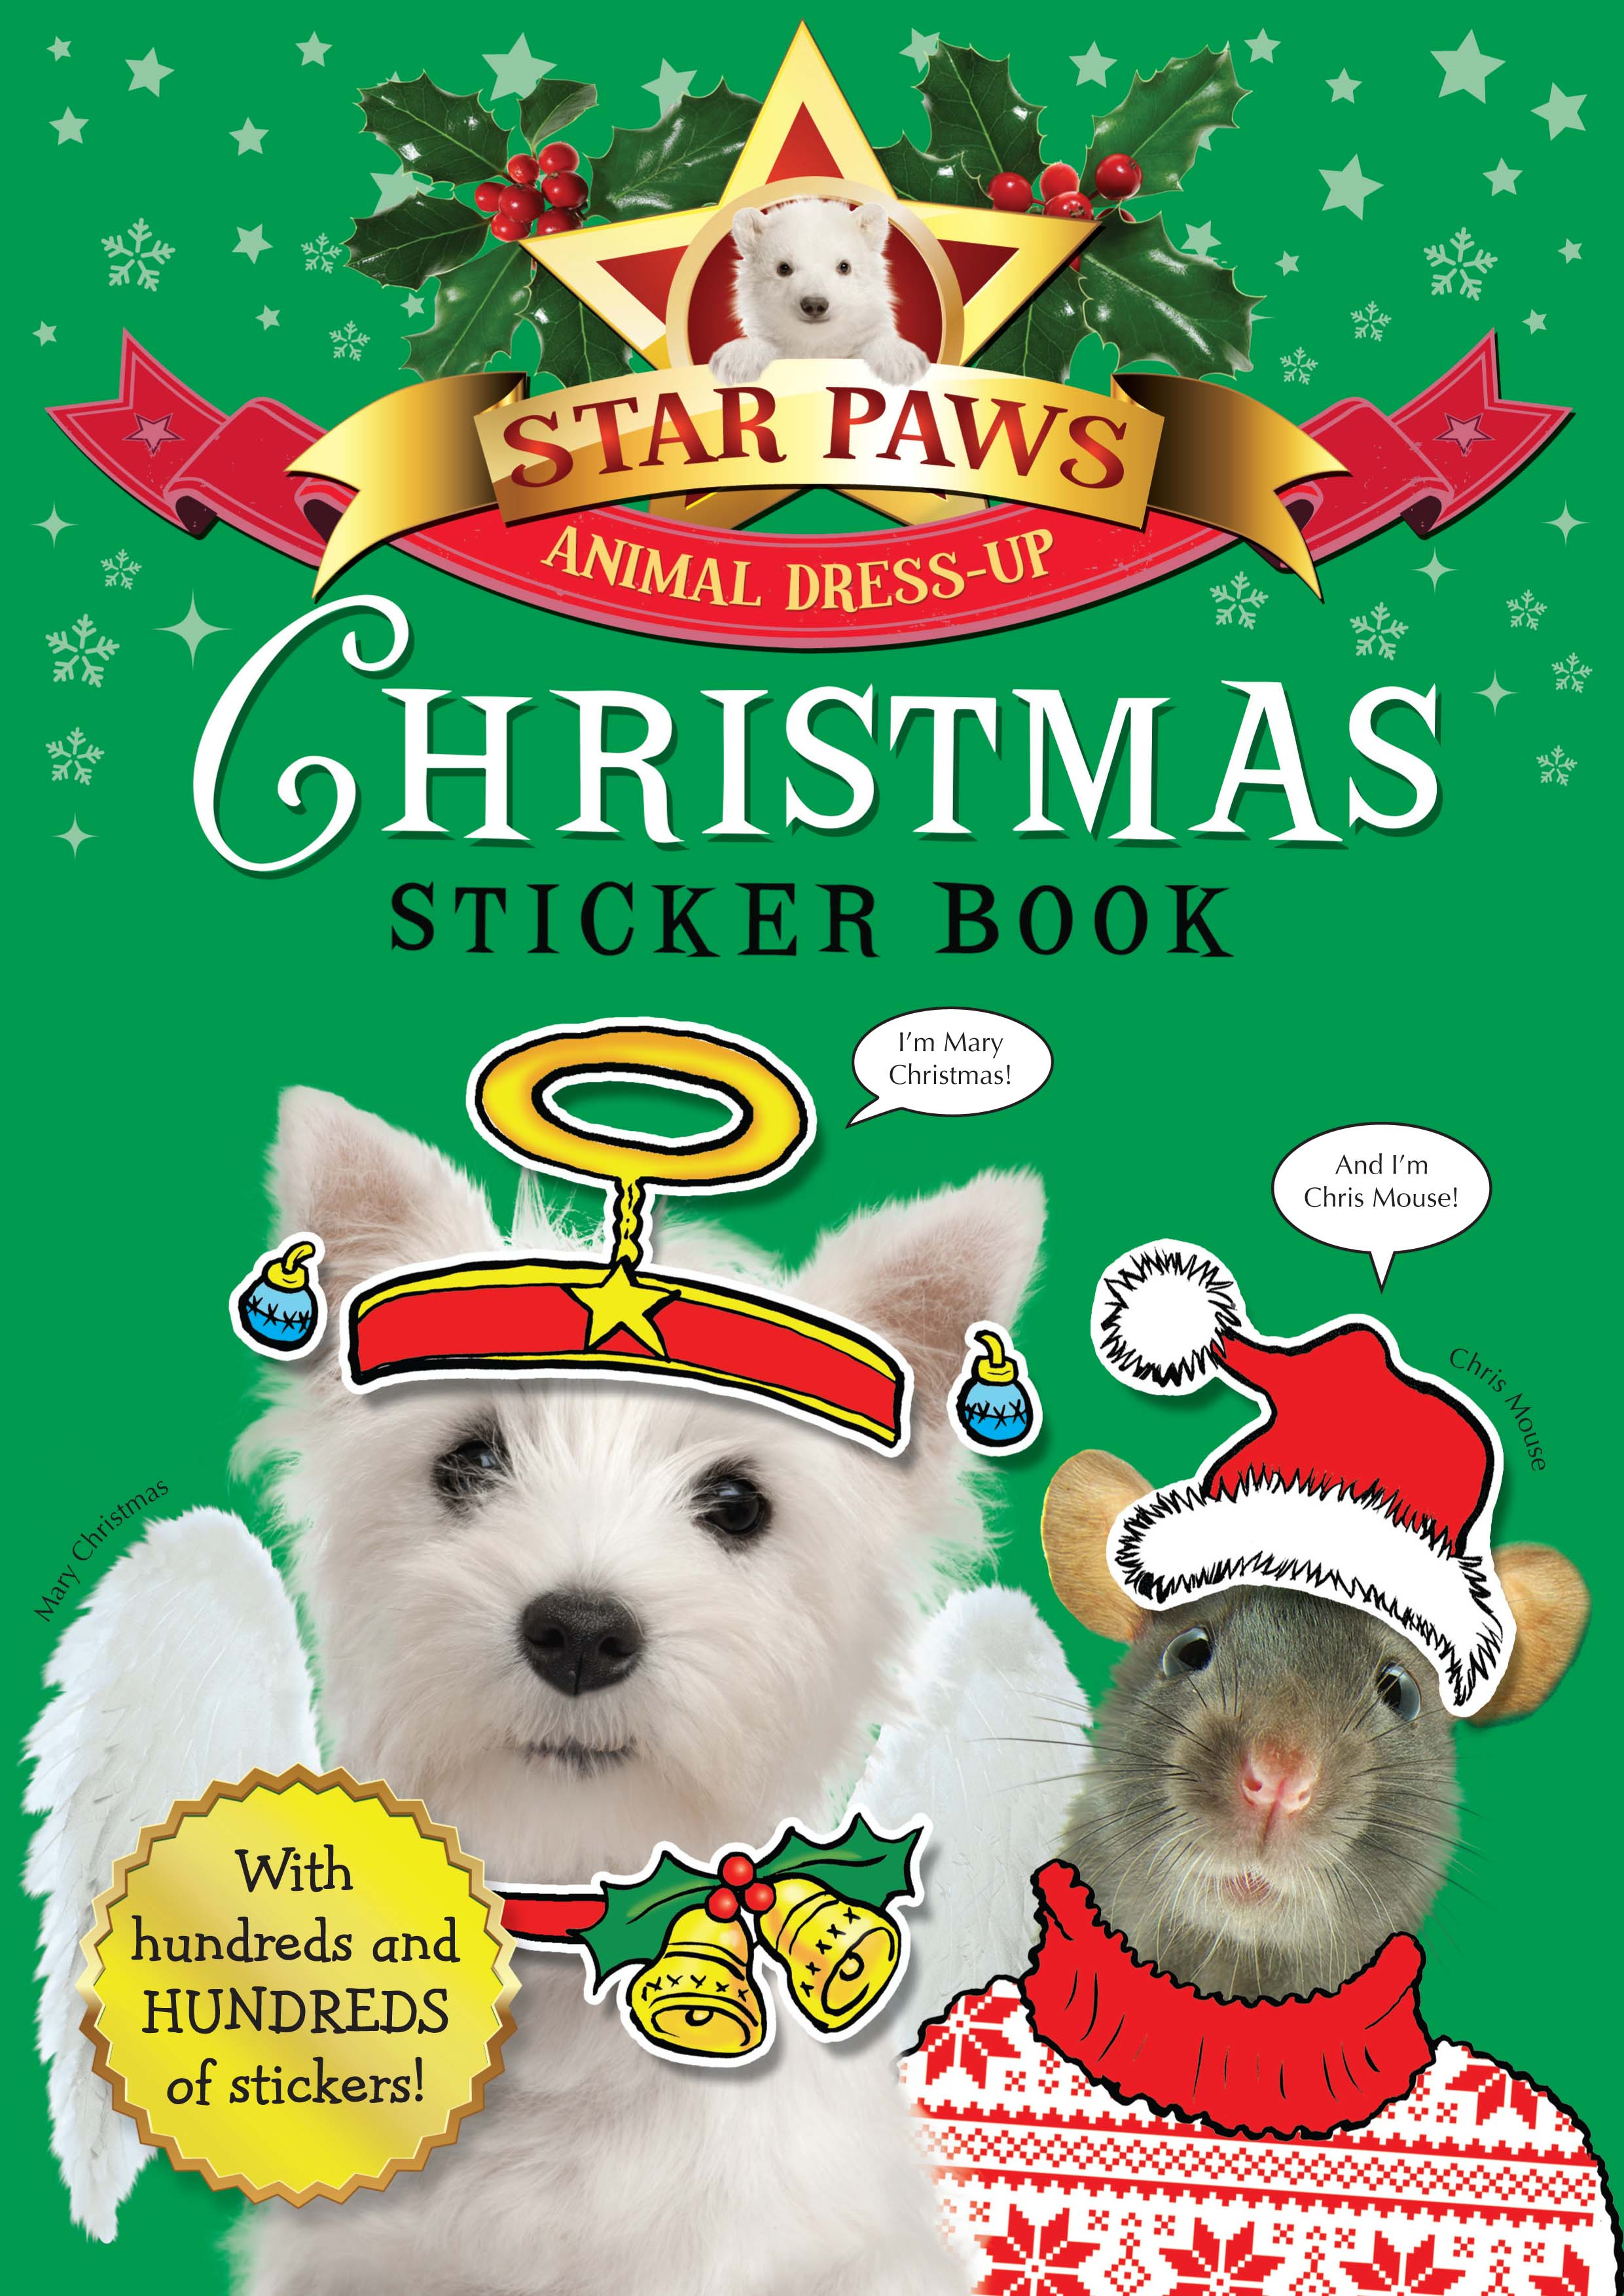 Christmas Sticker Book: Star Paws by MacMillan Children's Books, ISBN: 9781447236917